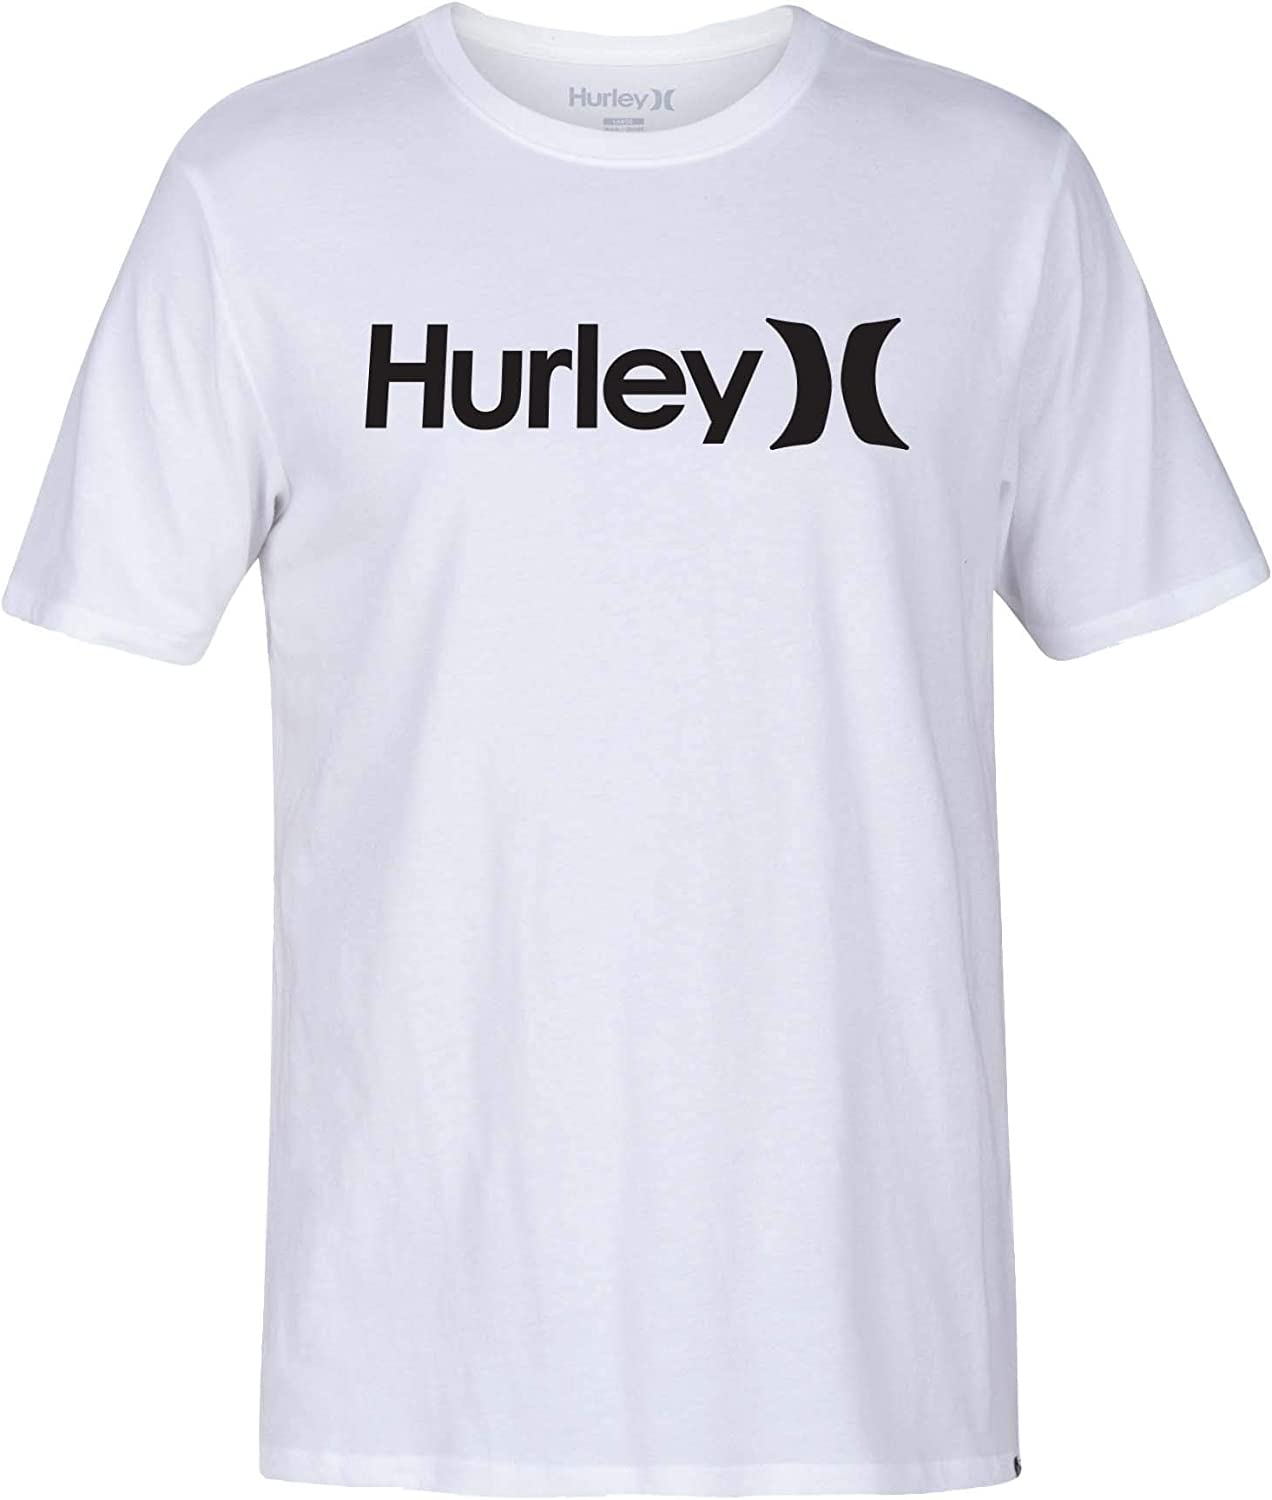 Hurley Little Boys' Premium Tee Only One Solid El Paso Mall High material